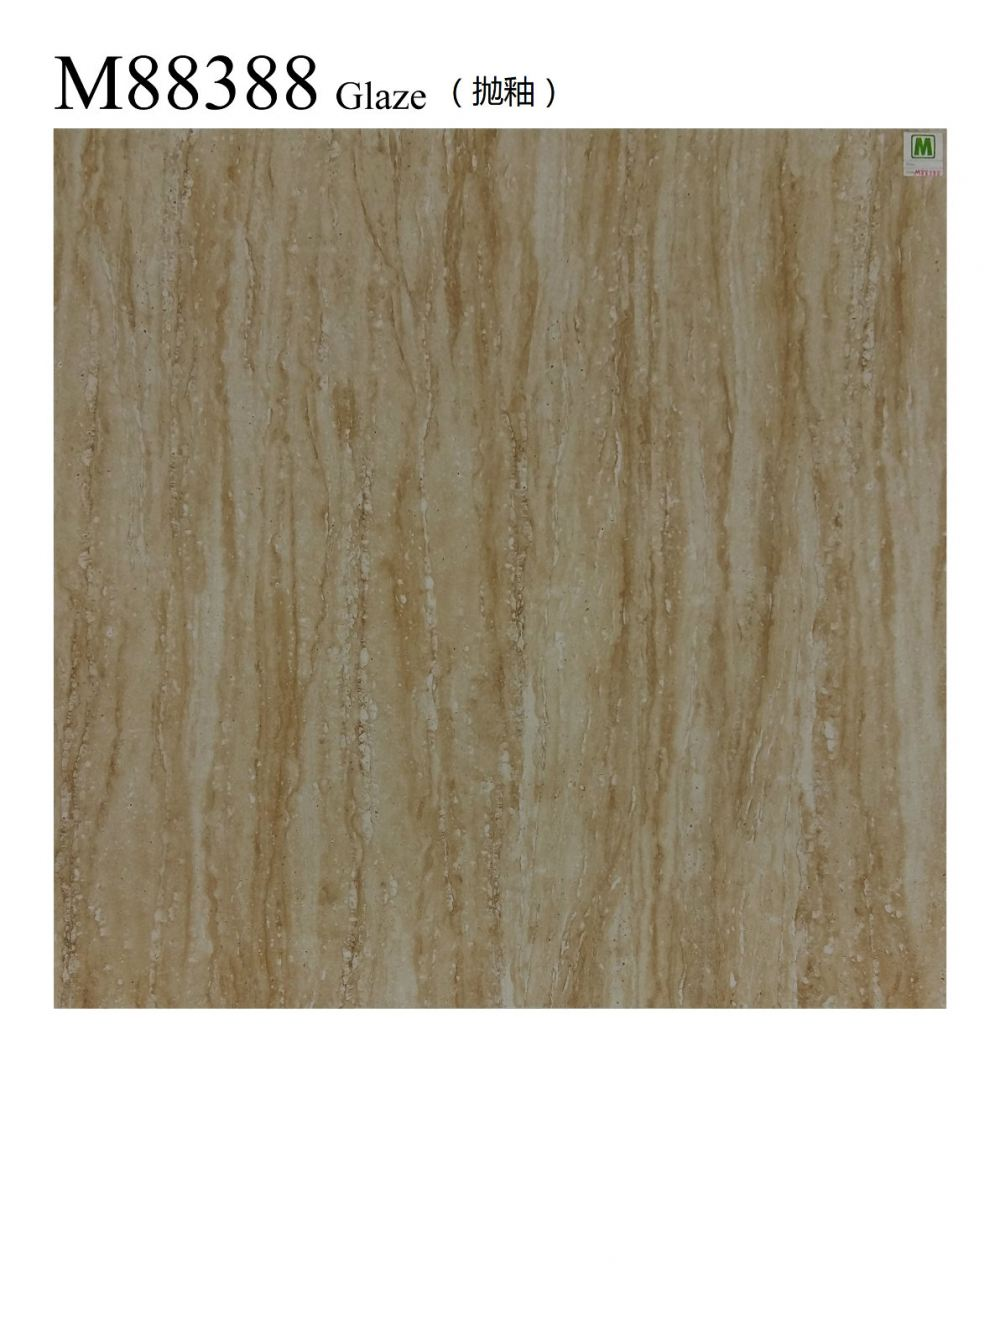 M88388 FLOOR TILES TILE Supplier, Suppliers, Supply, Supplies ~ Itoli Ceramic Sdn Bhd